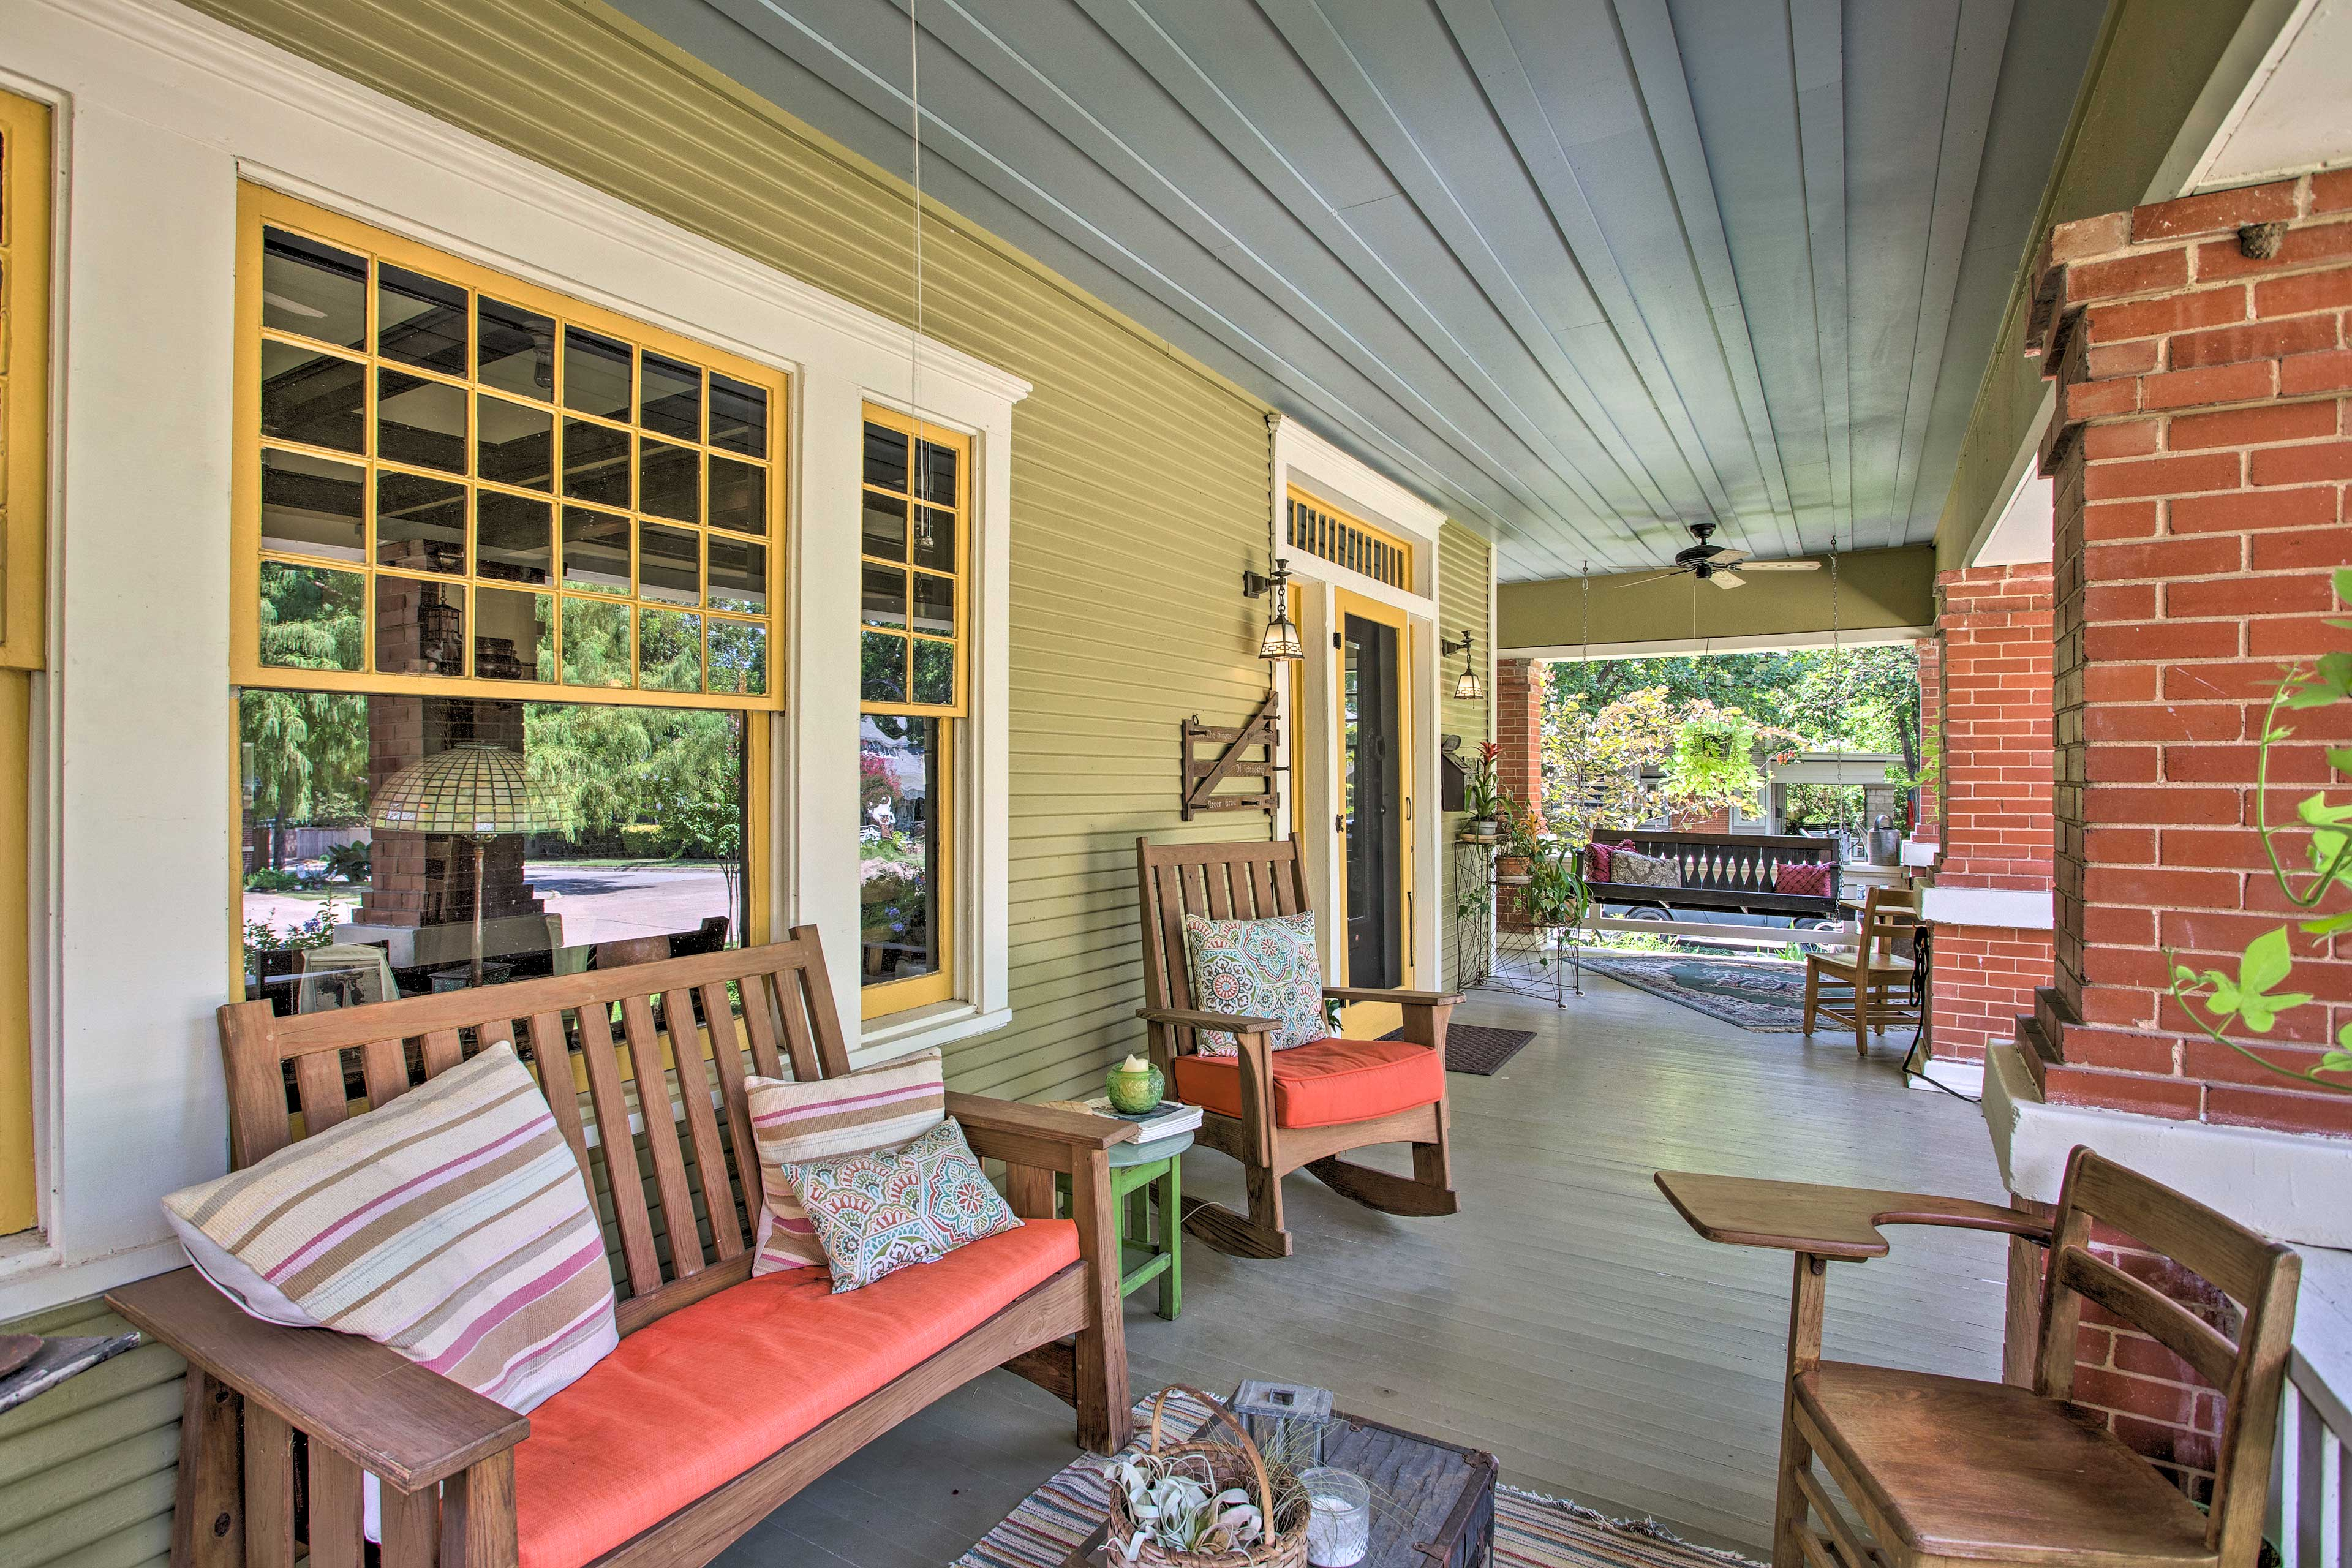 You'll also have access to the porch.